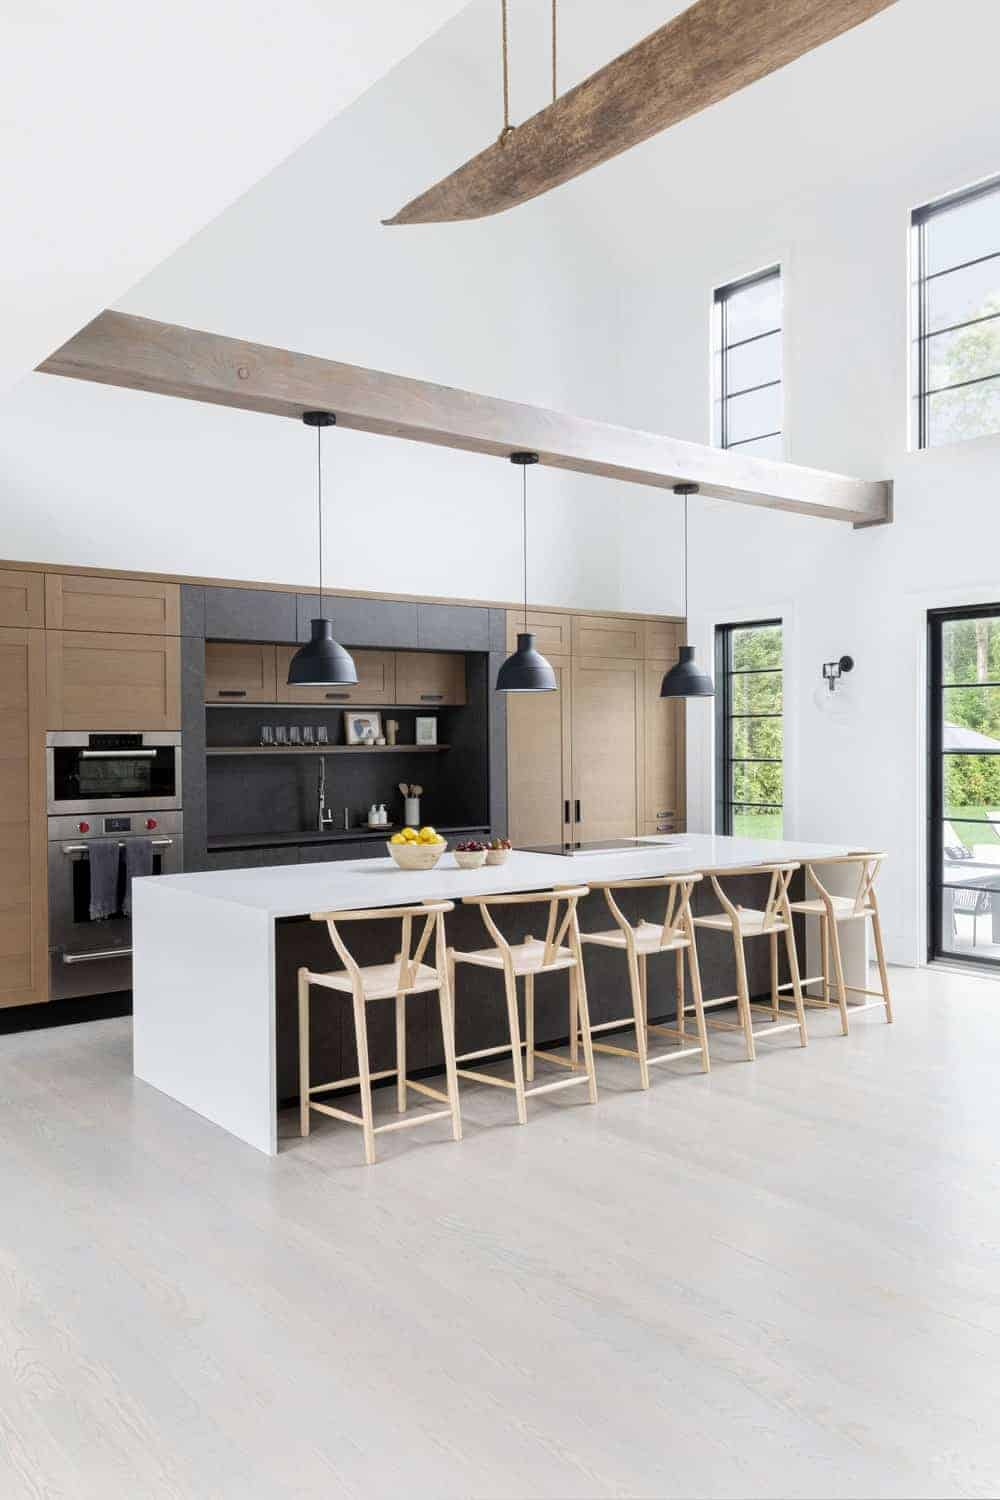 The home features a single wall kitchen with brown cabinetry along with a white breakfast bar countertop lighted by pendant lights.